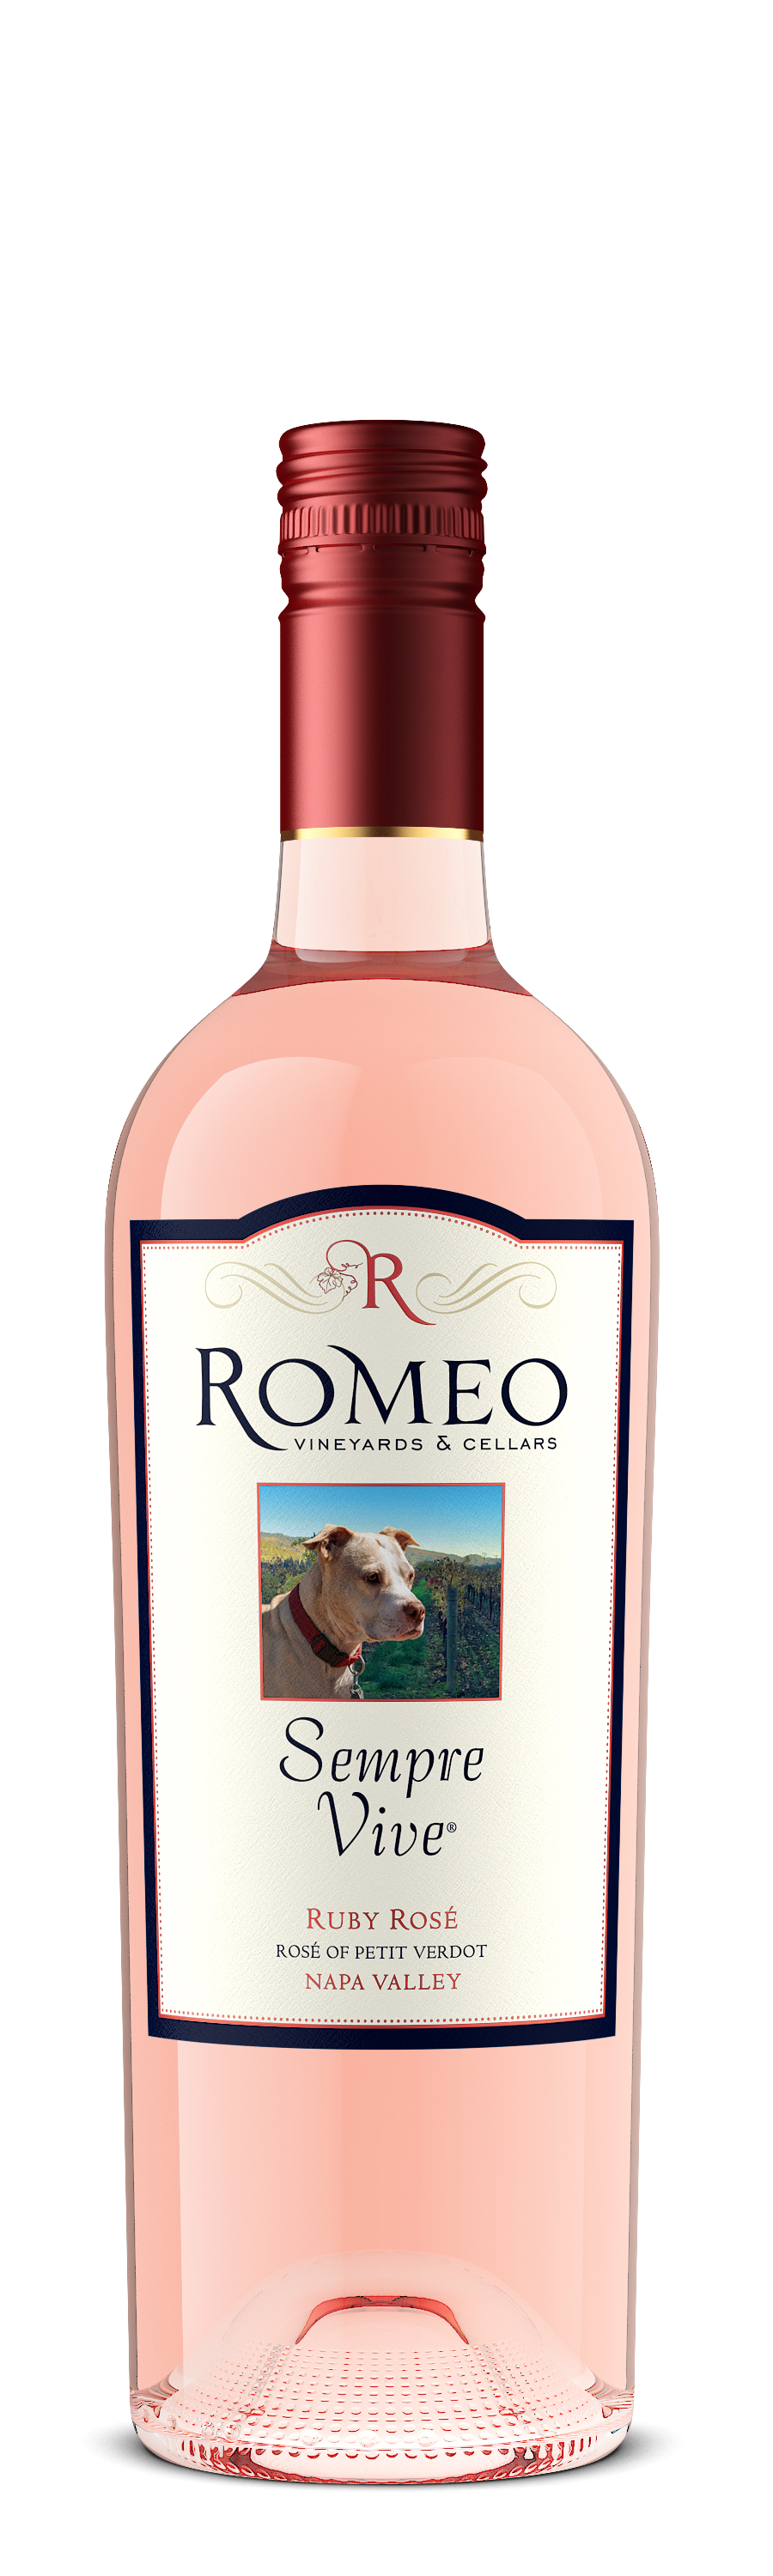 Product Image for 2018 Petit Verdot Ruby Rosé